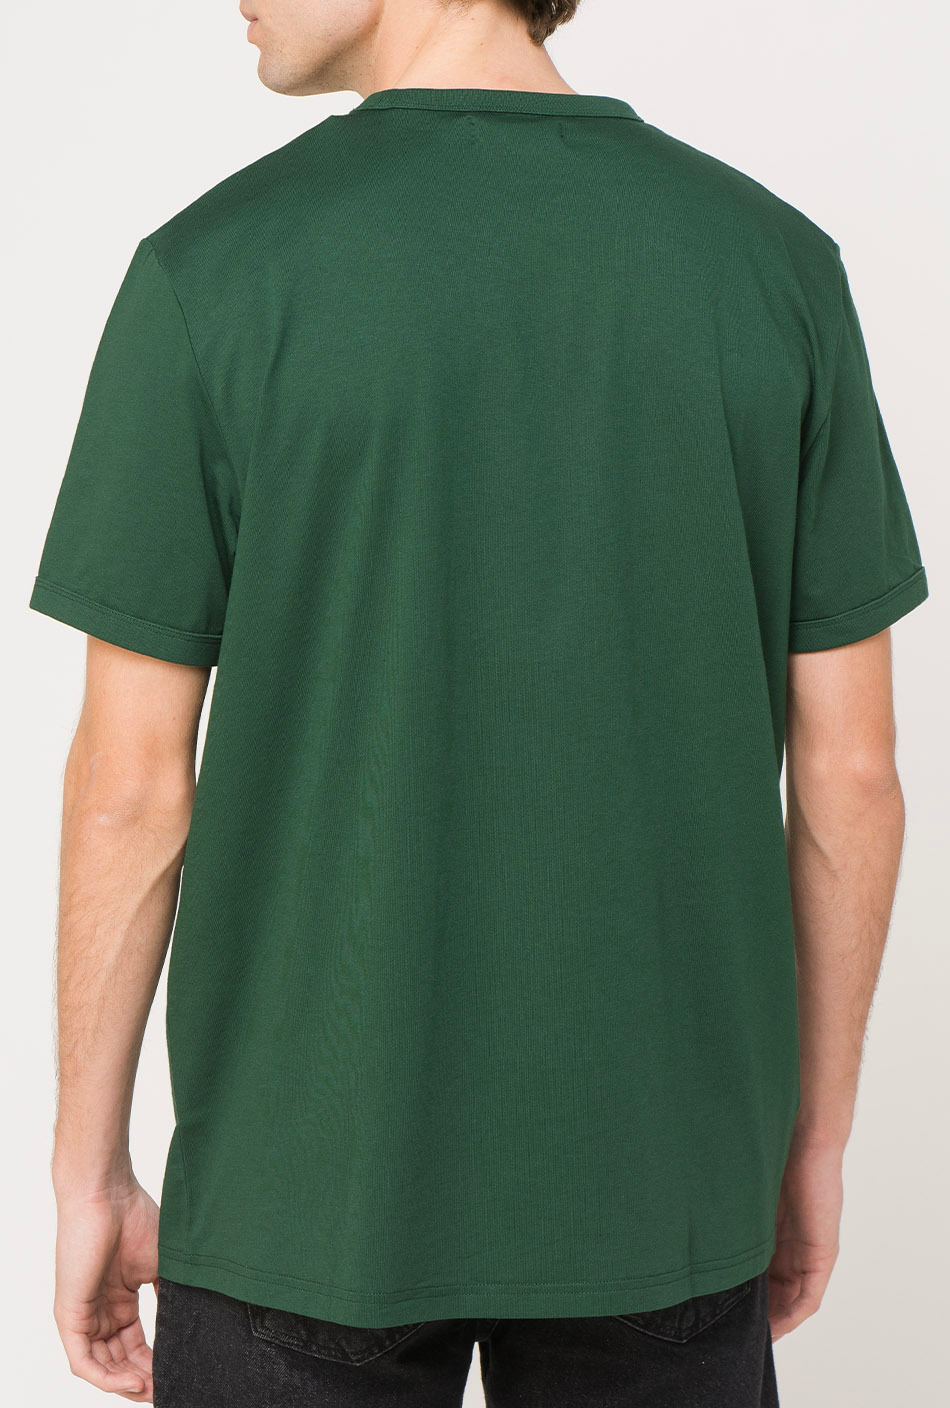 Fred Perry Green T-Shirt